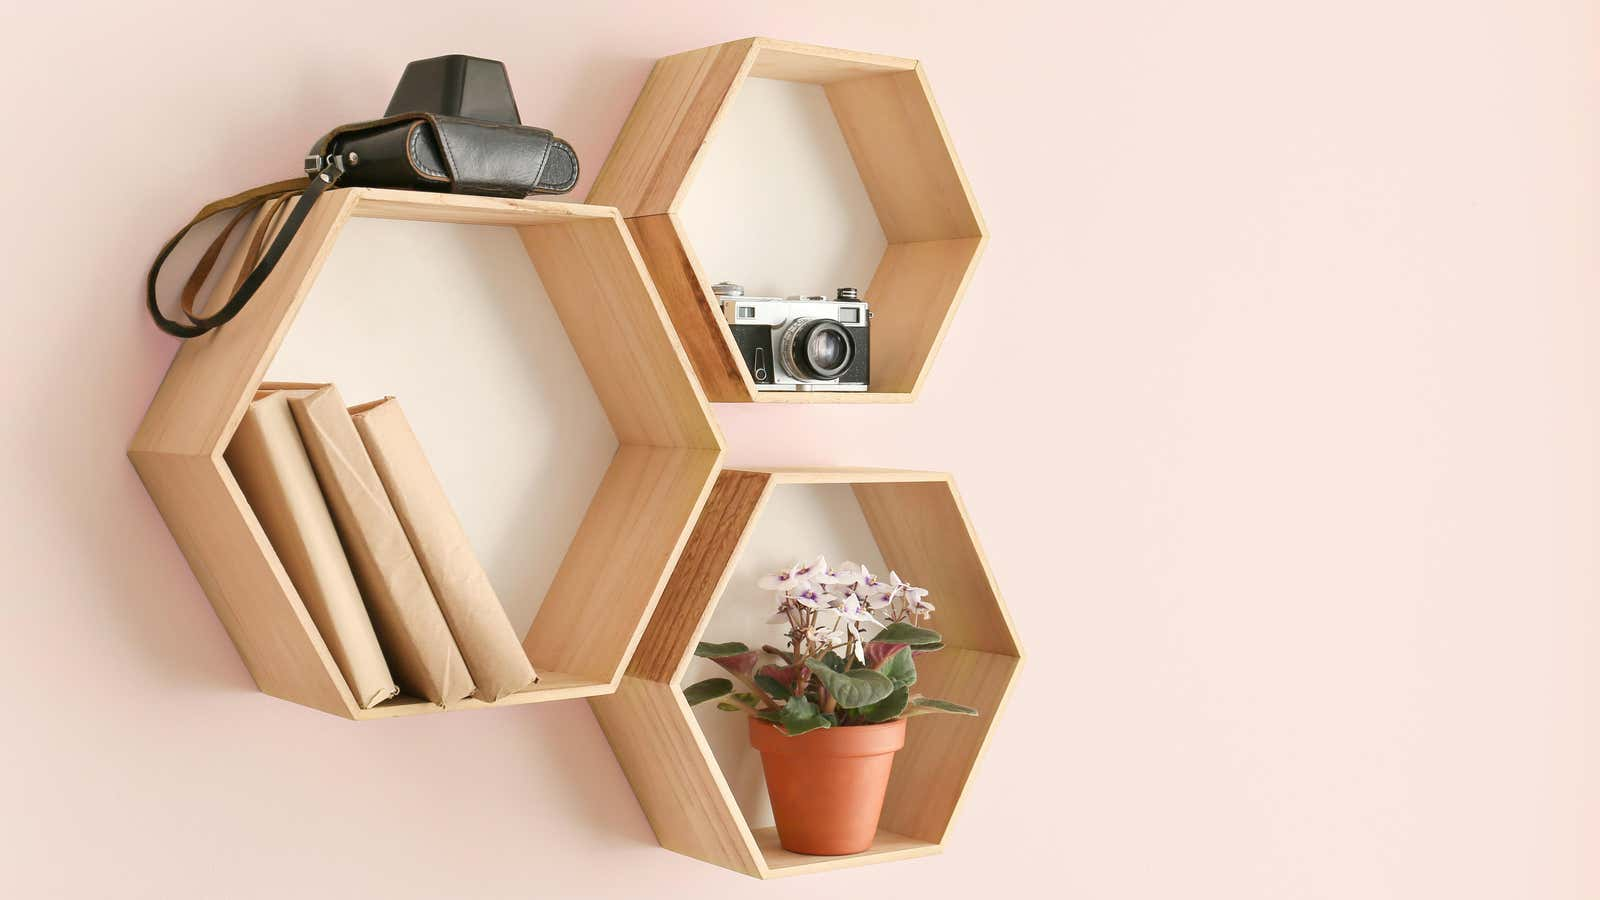 How to Build Your Own Stylish Hexagon Shelf